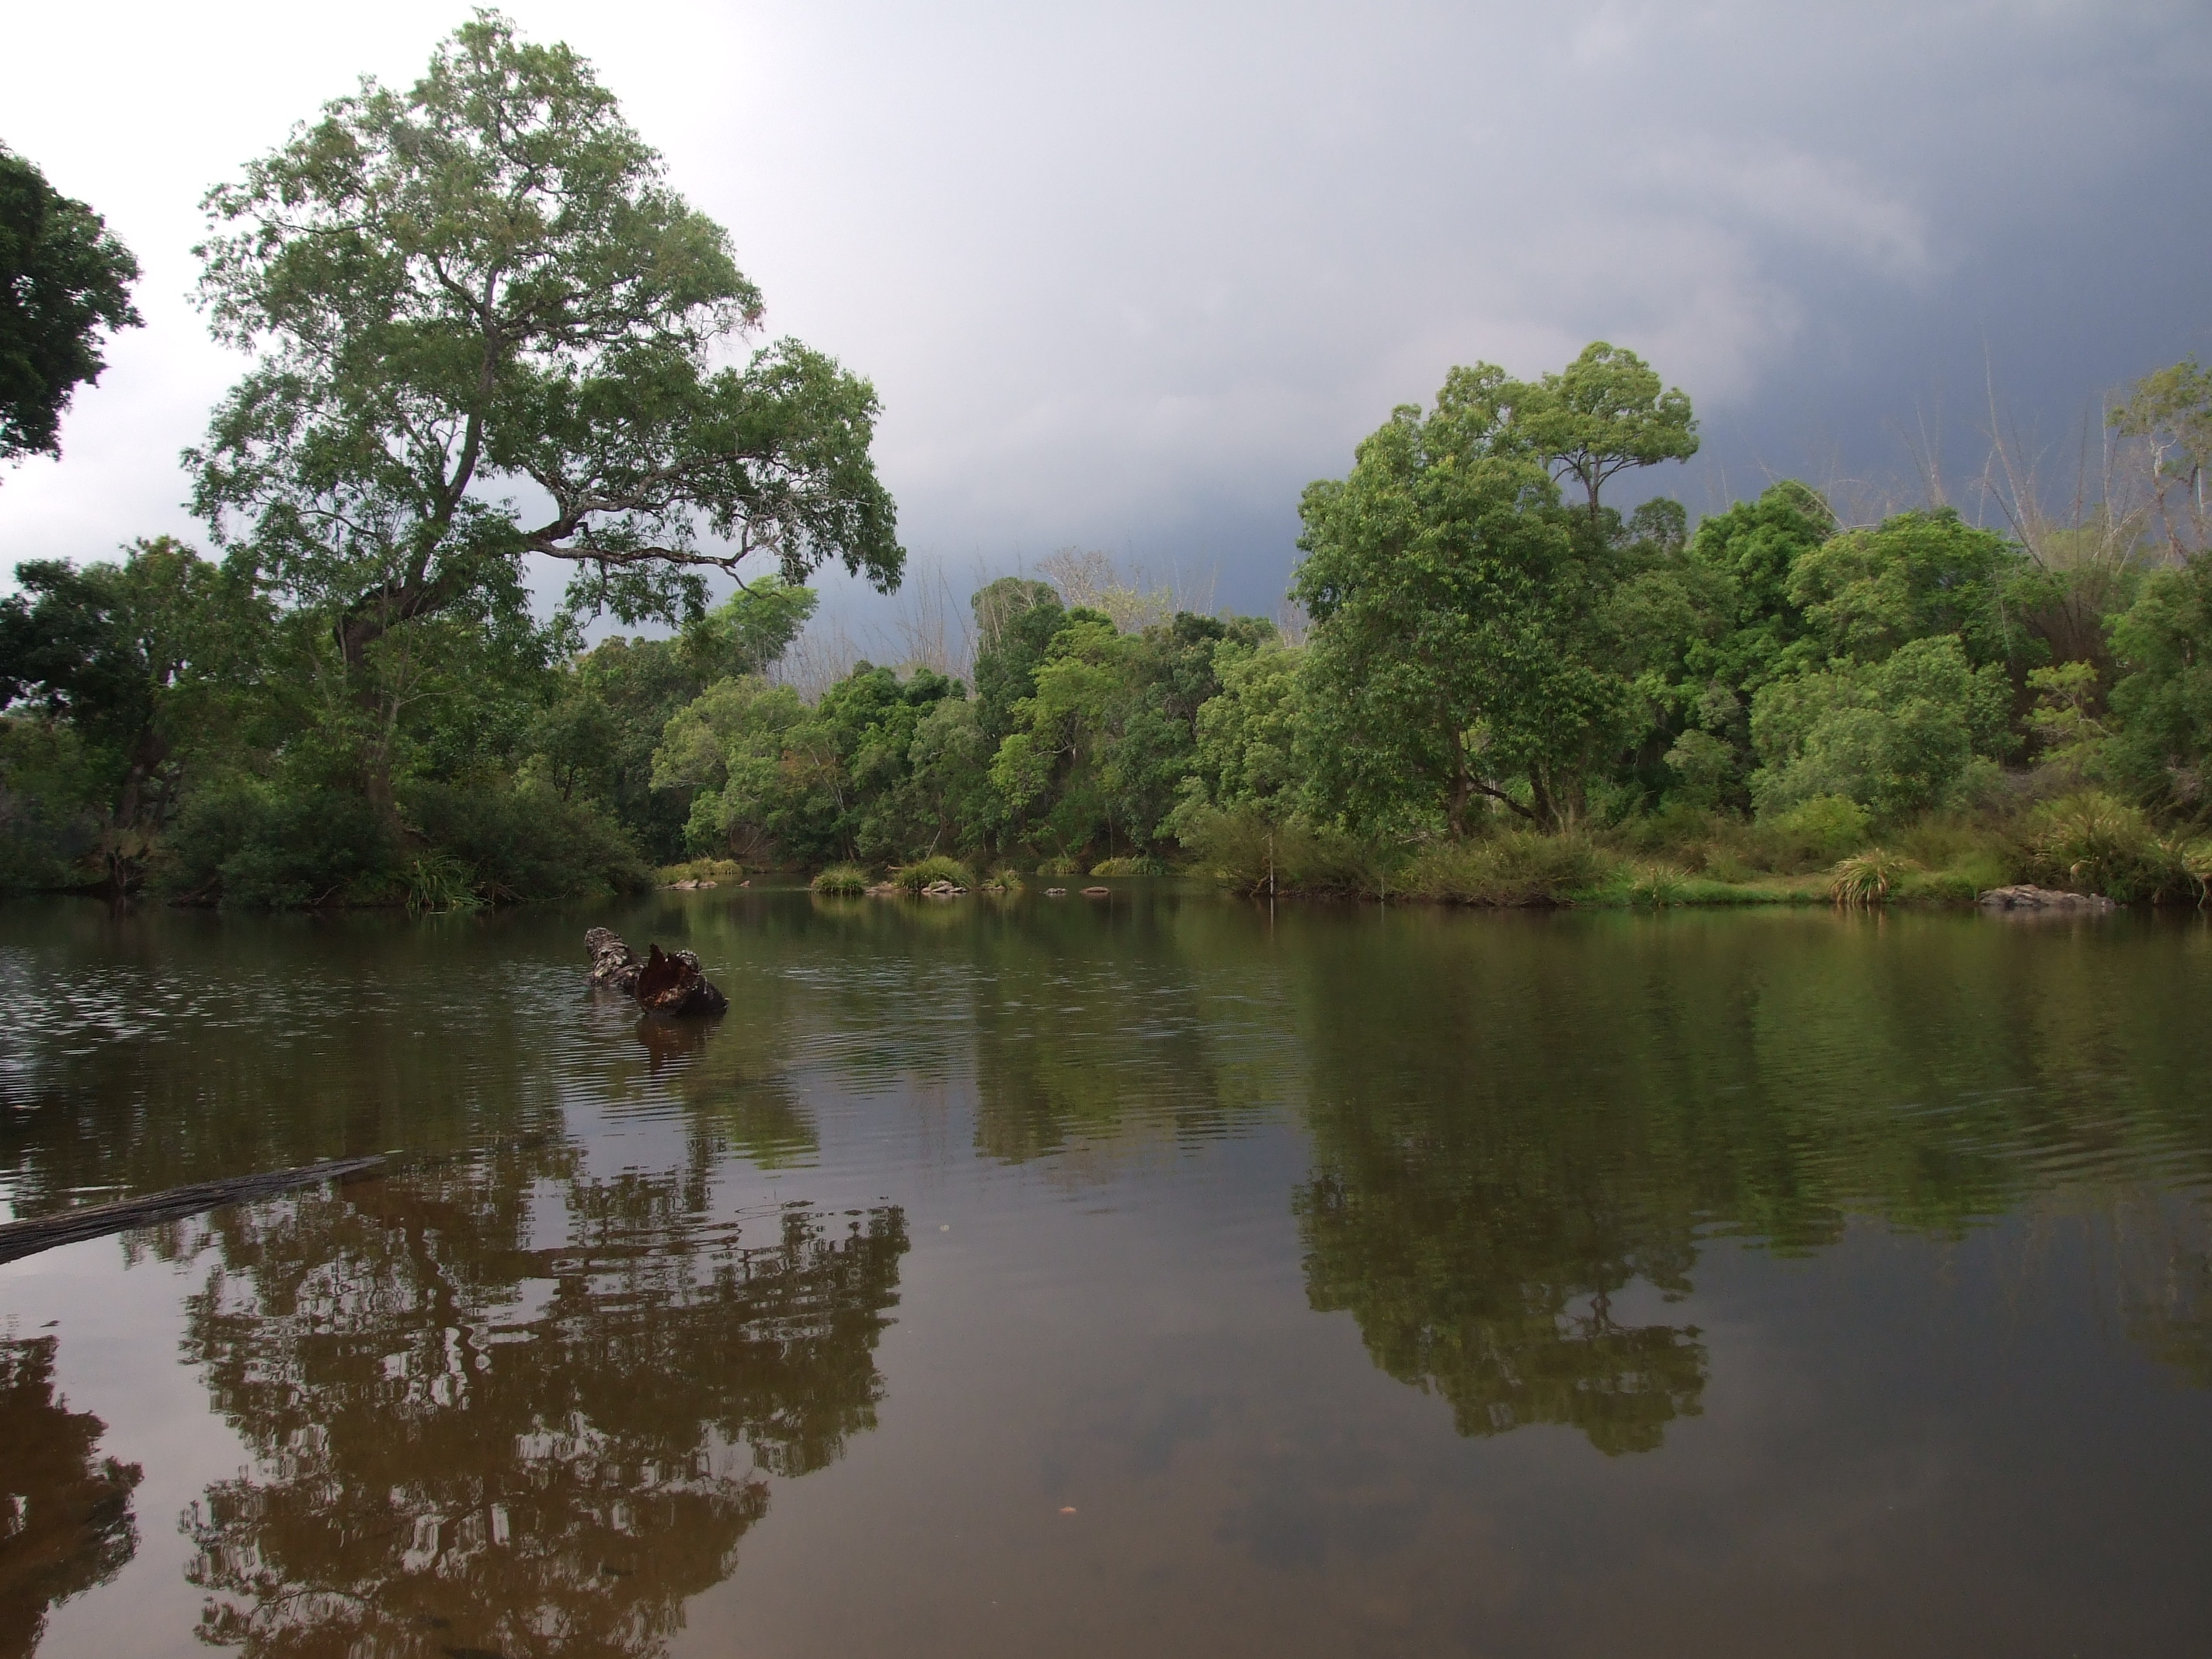 Native riverside trees protect the river just as they protect adjoining farmlands from erosion. Credit: Nisarg Prakash